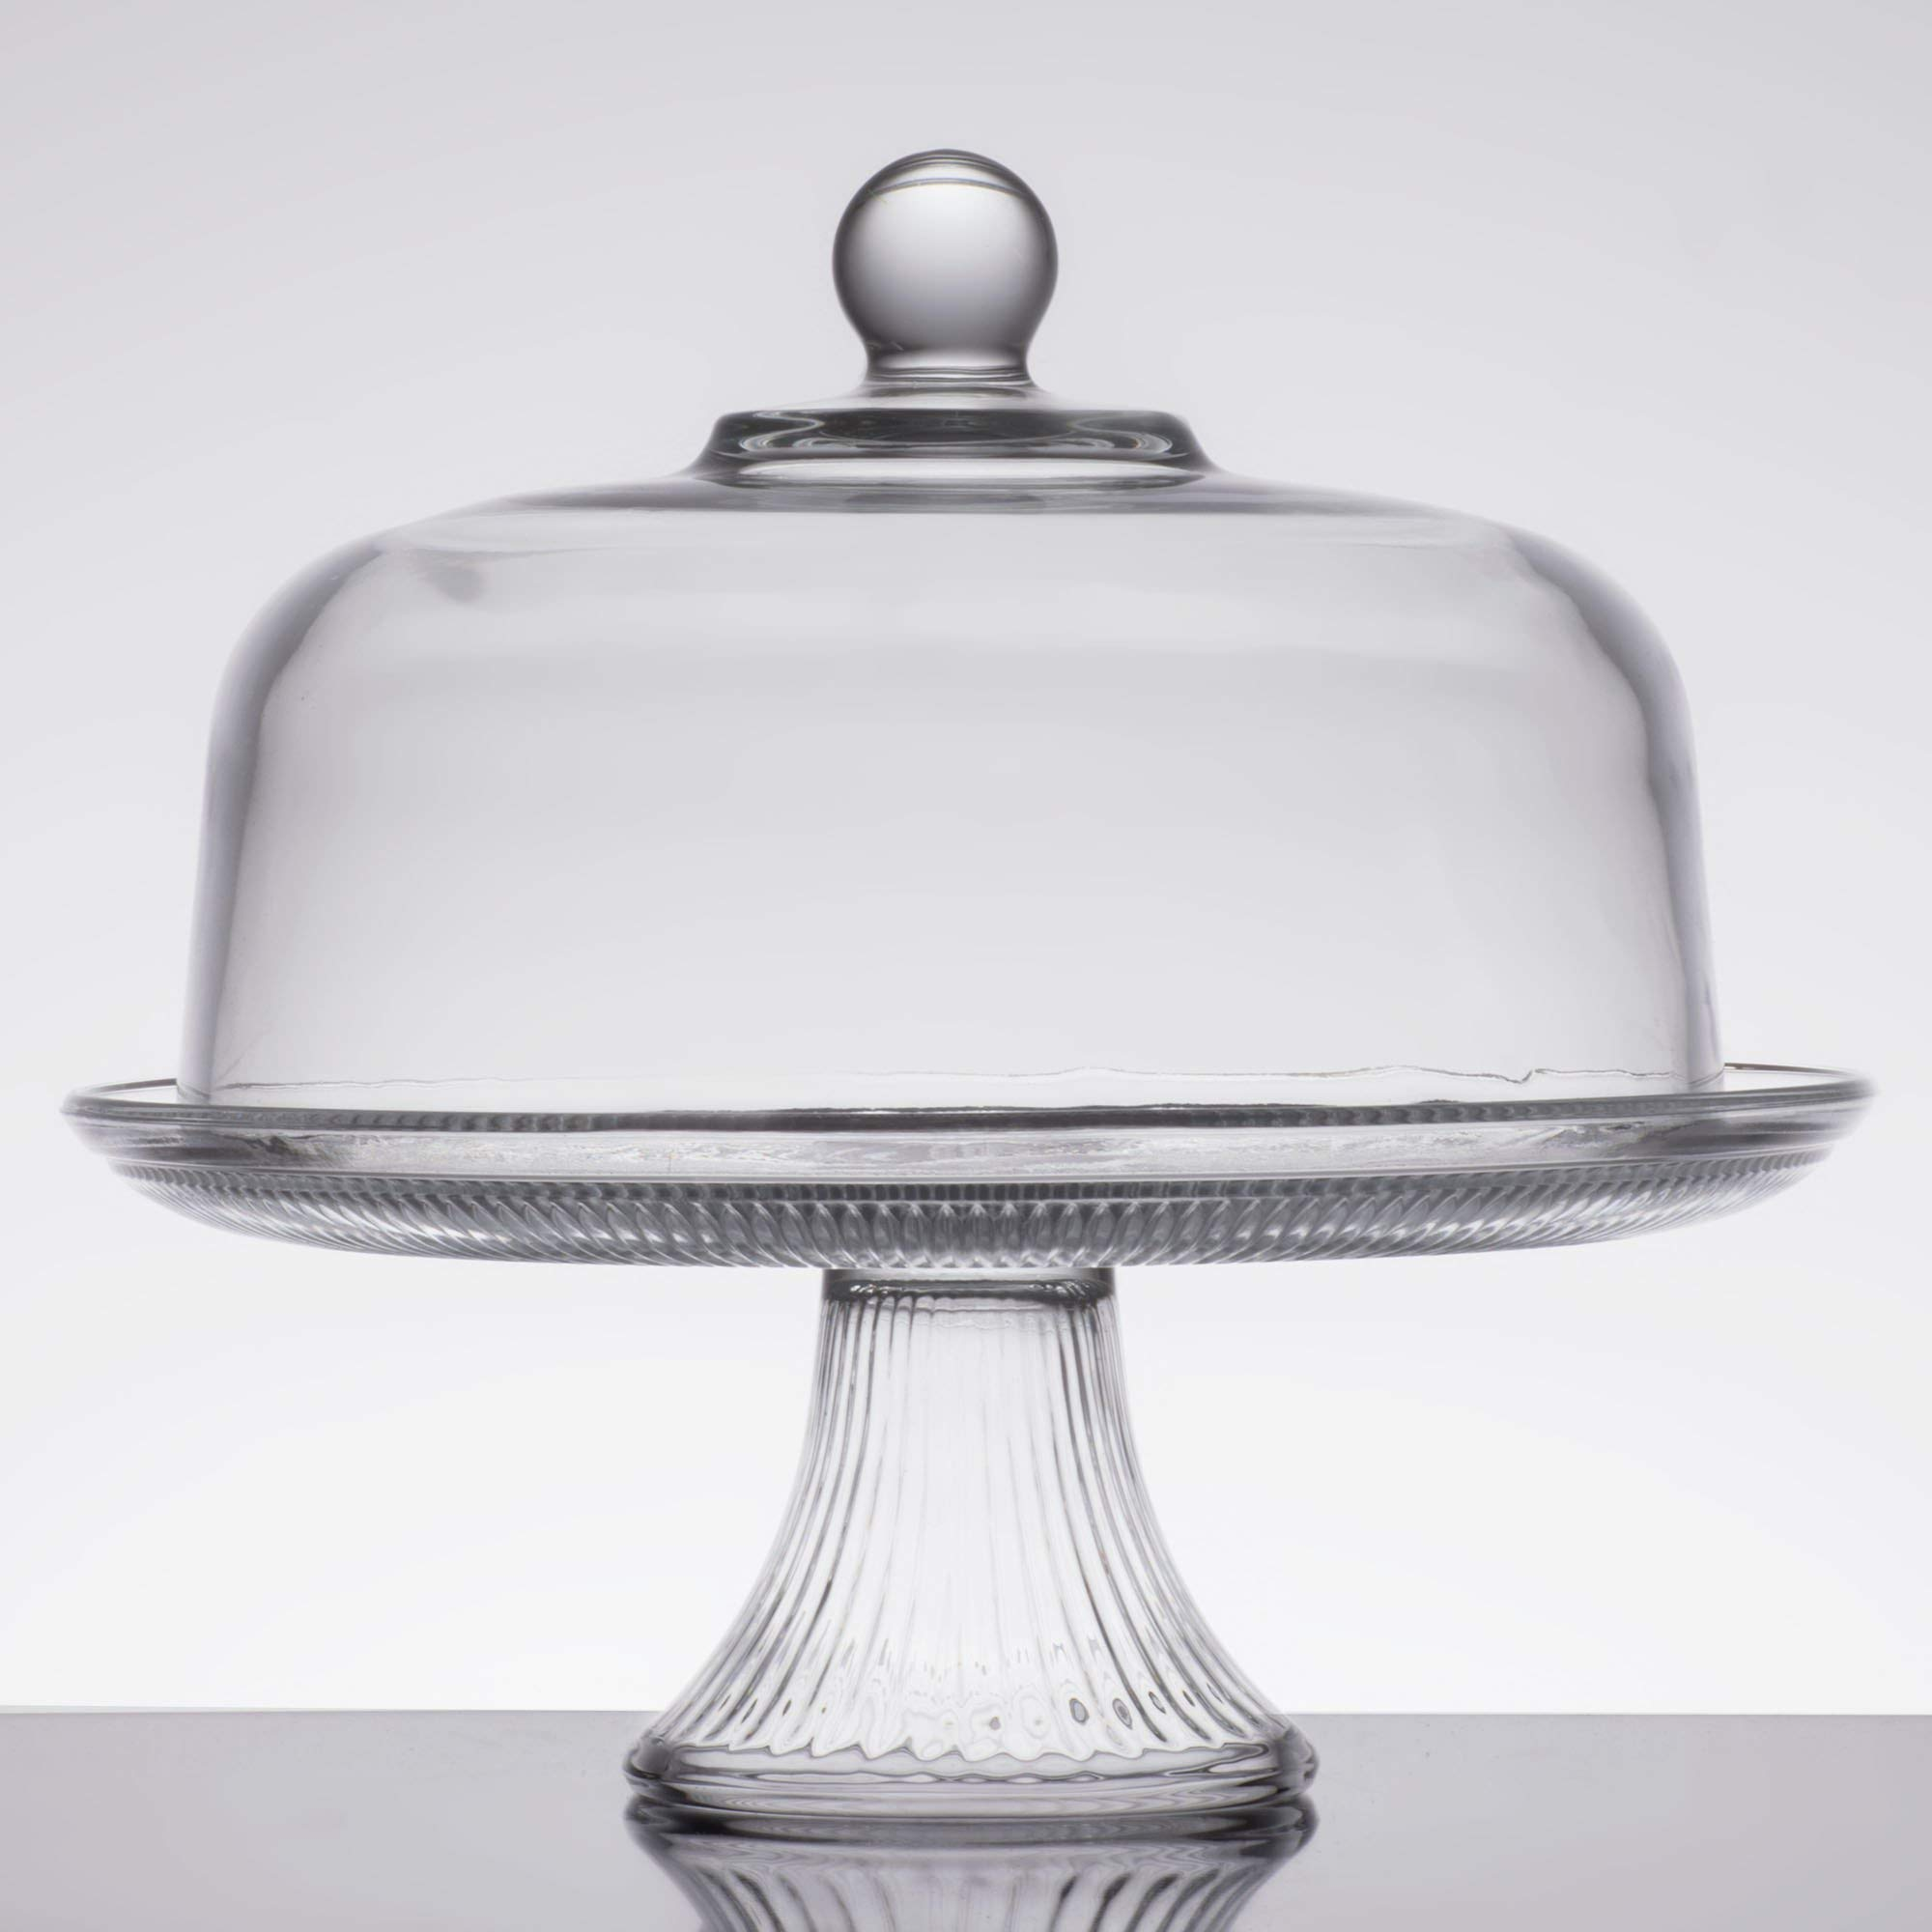 TableTop King 86475L13 Canton 12'' Glass Cake Stand/Punch Bowl Set